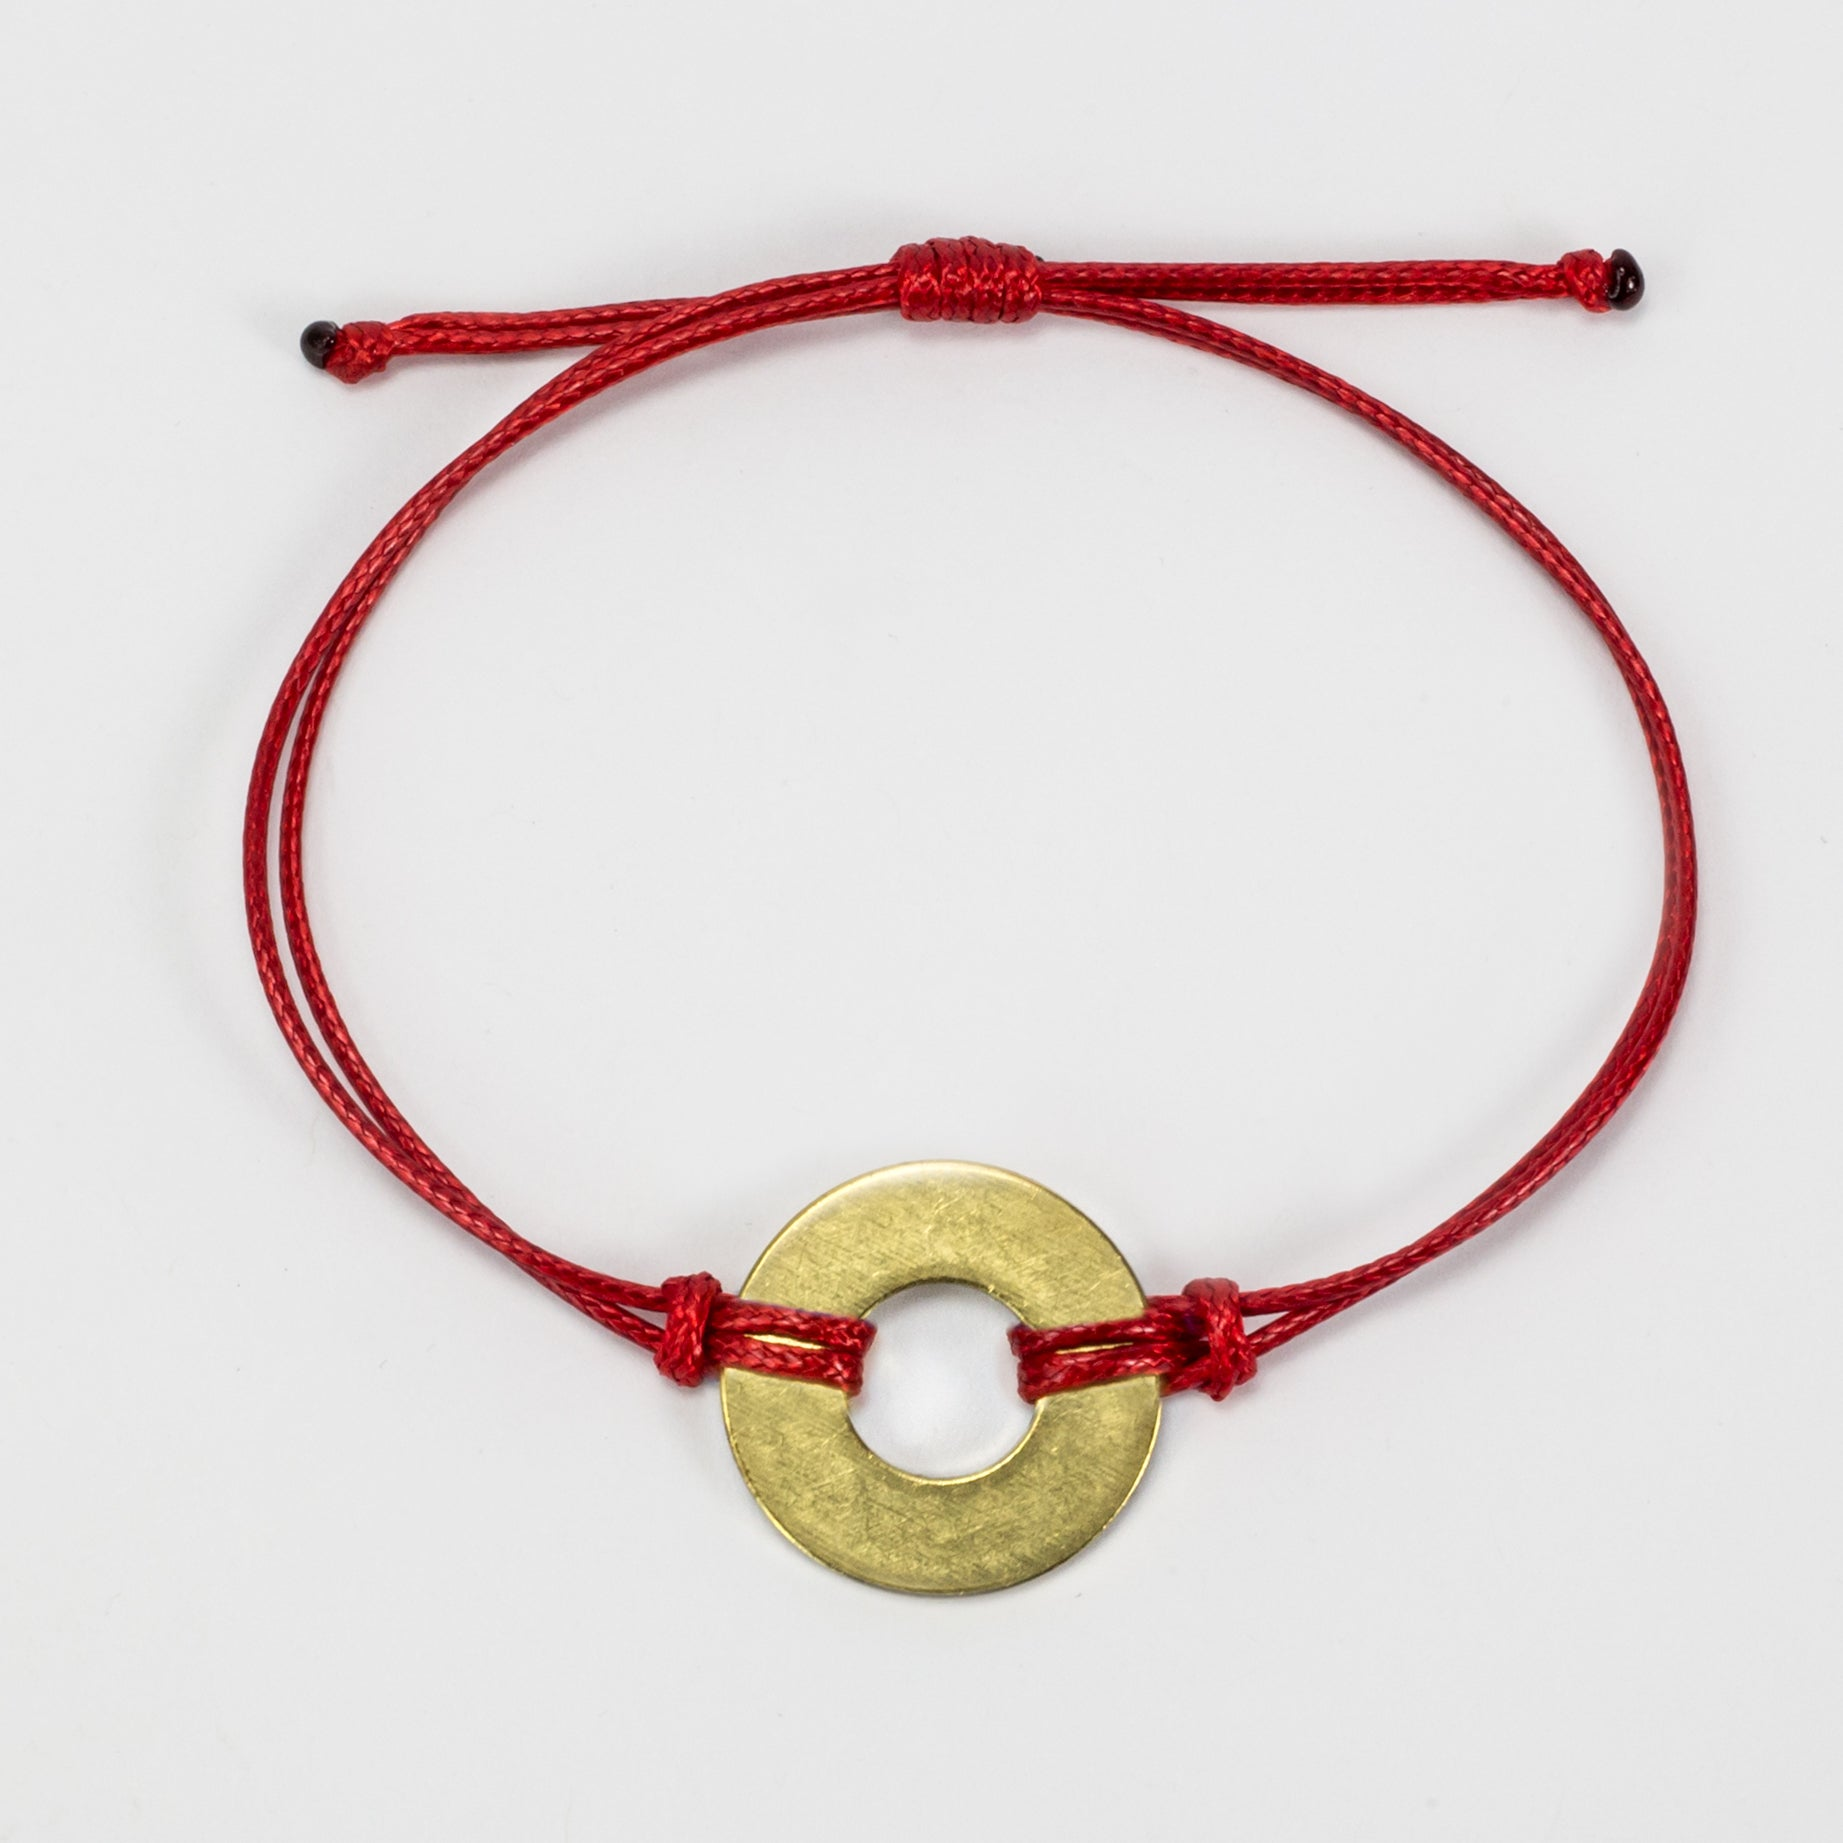 MyIntent Refill Classic Bracelet Red String with Brass token